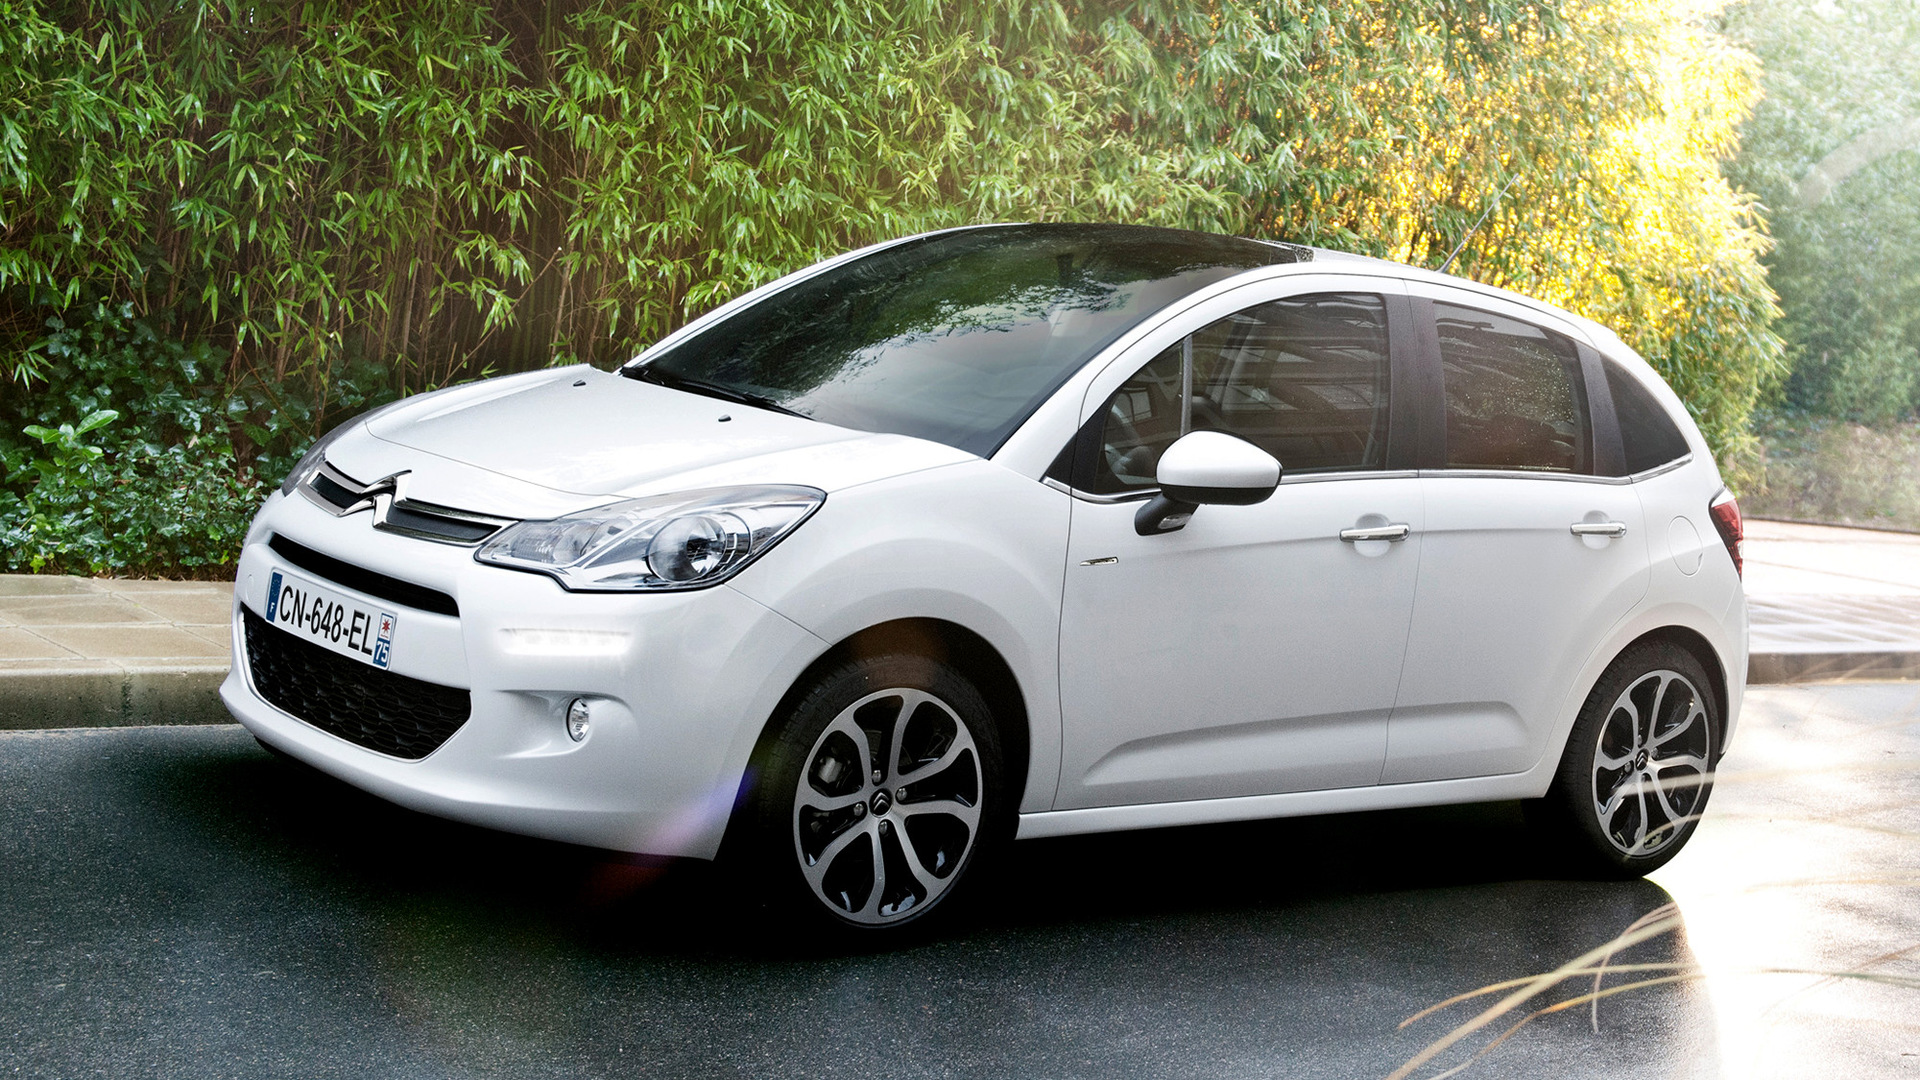 carpixel.net-2013-citroen-c3-9364-hd